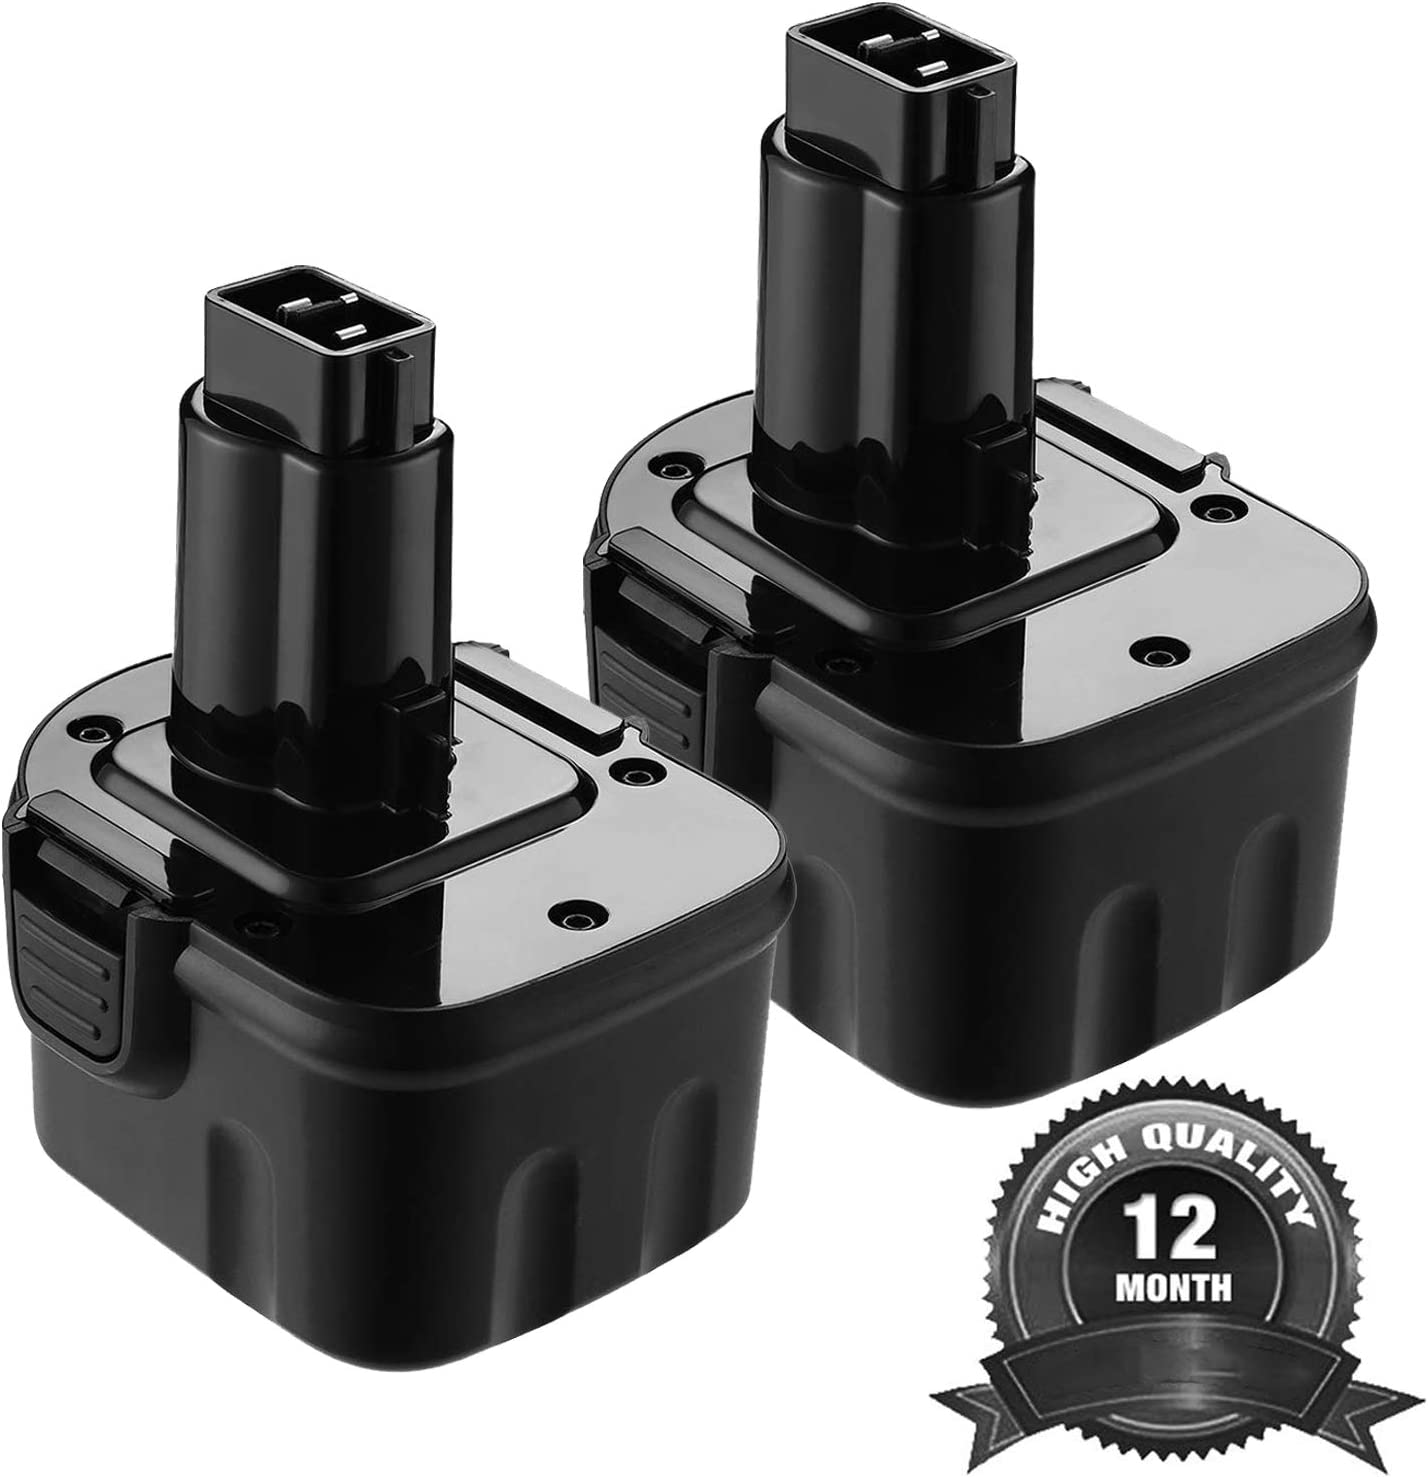 2Pack 3600mAh 12V DW9071 for Dewalt Replacement Battery, Ni-HM Battery for Dewalt DW9072 DC9071 DE9037 DE9071 DE9072 DE9074 DE9075 152250-27 397745-01